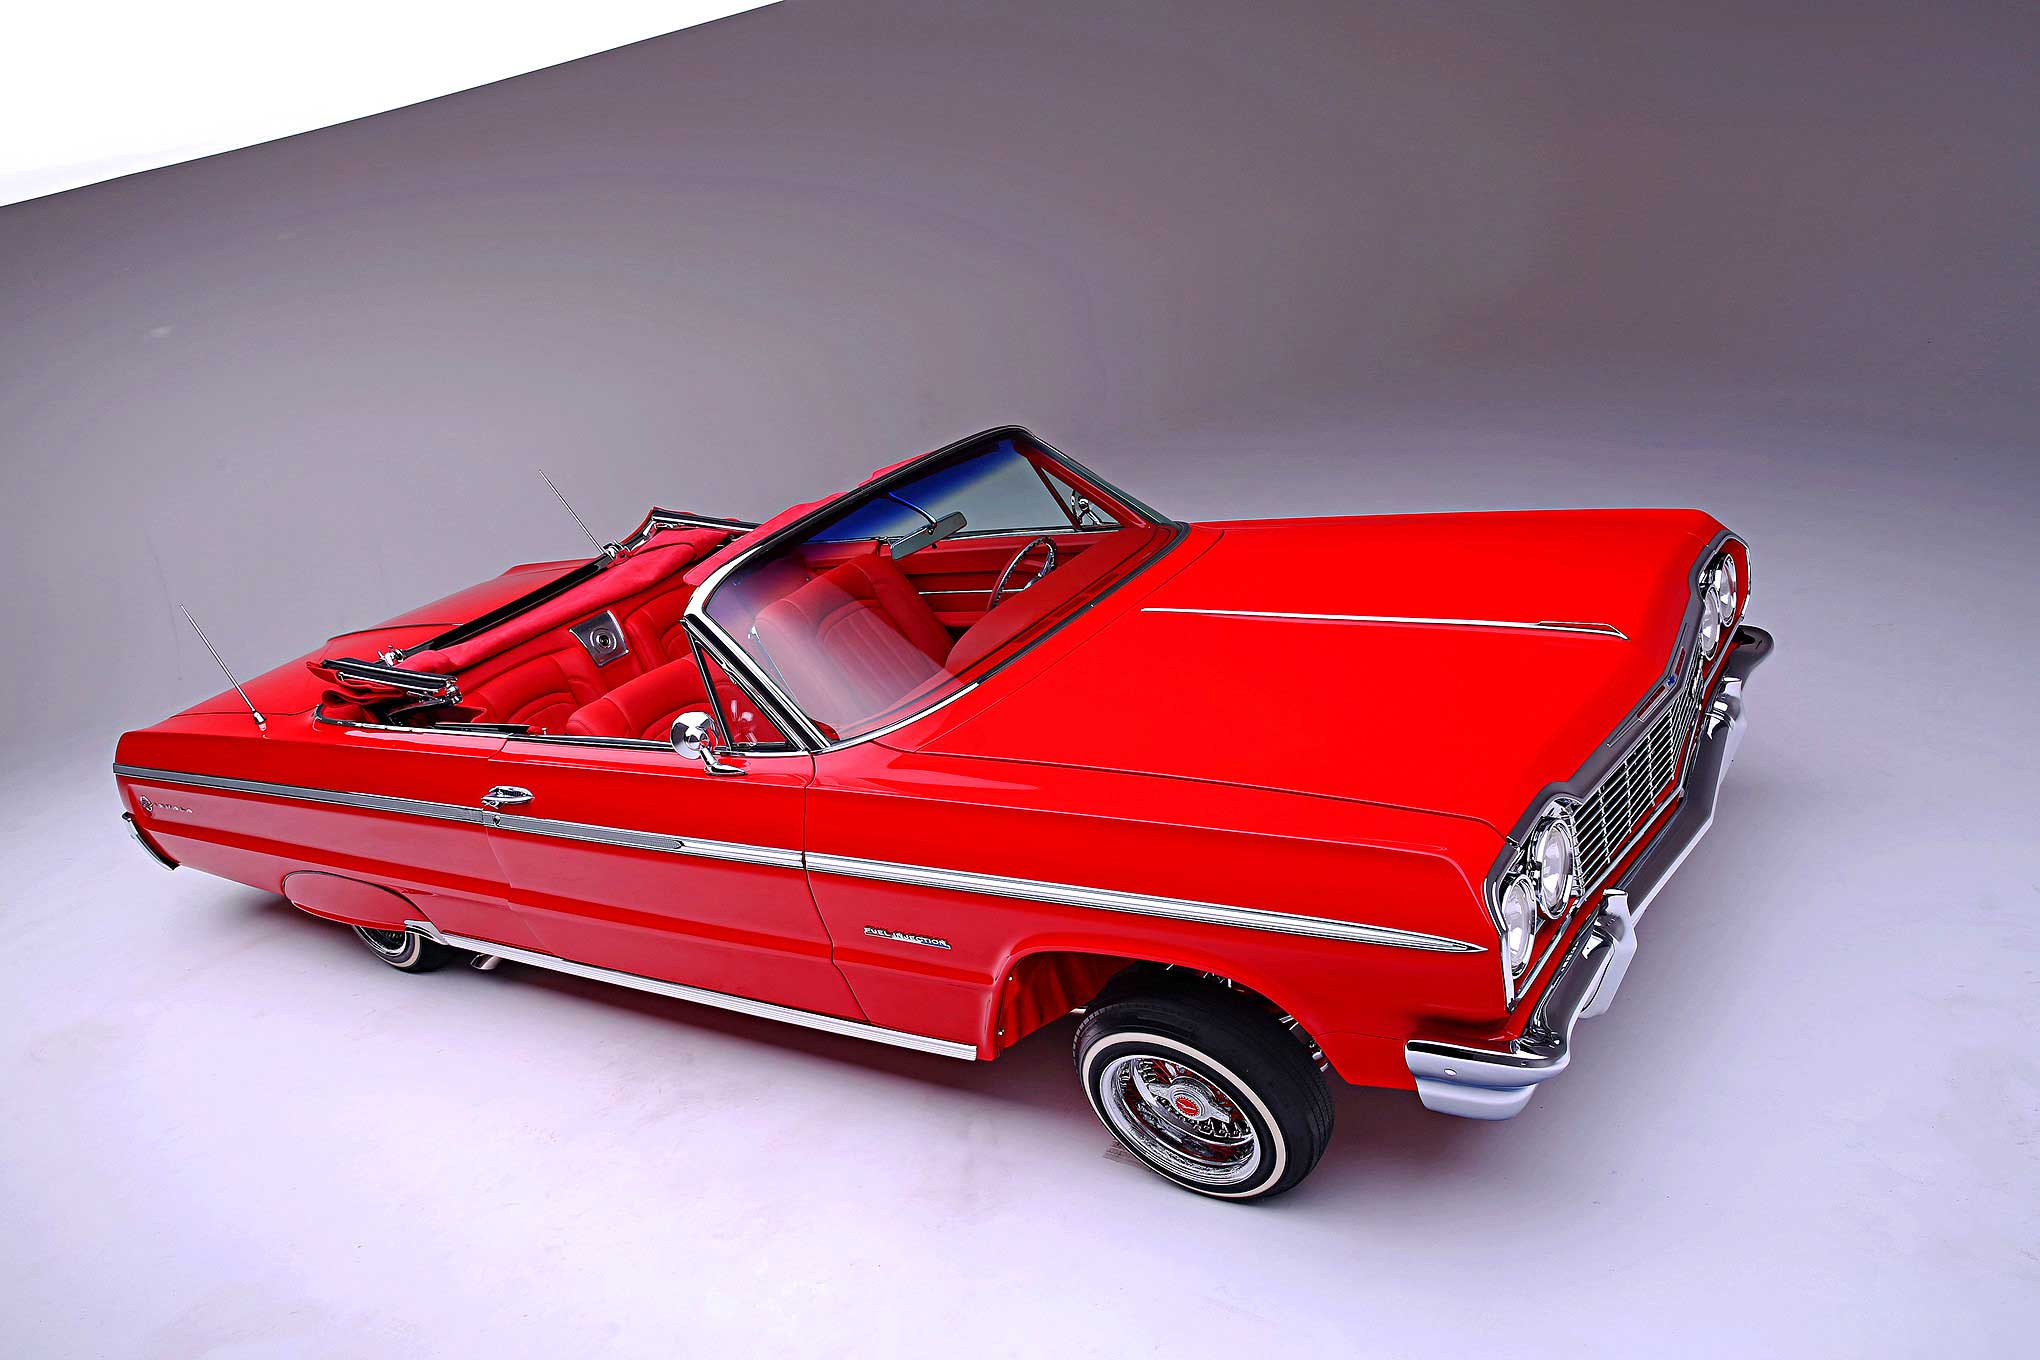 64 Chevy Impala Ss Convertible Standing The Test Of Time